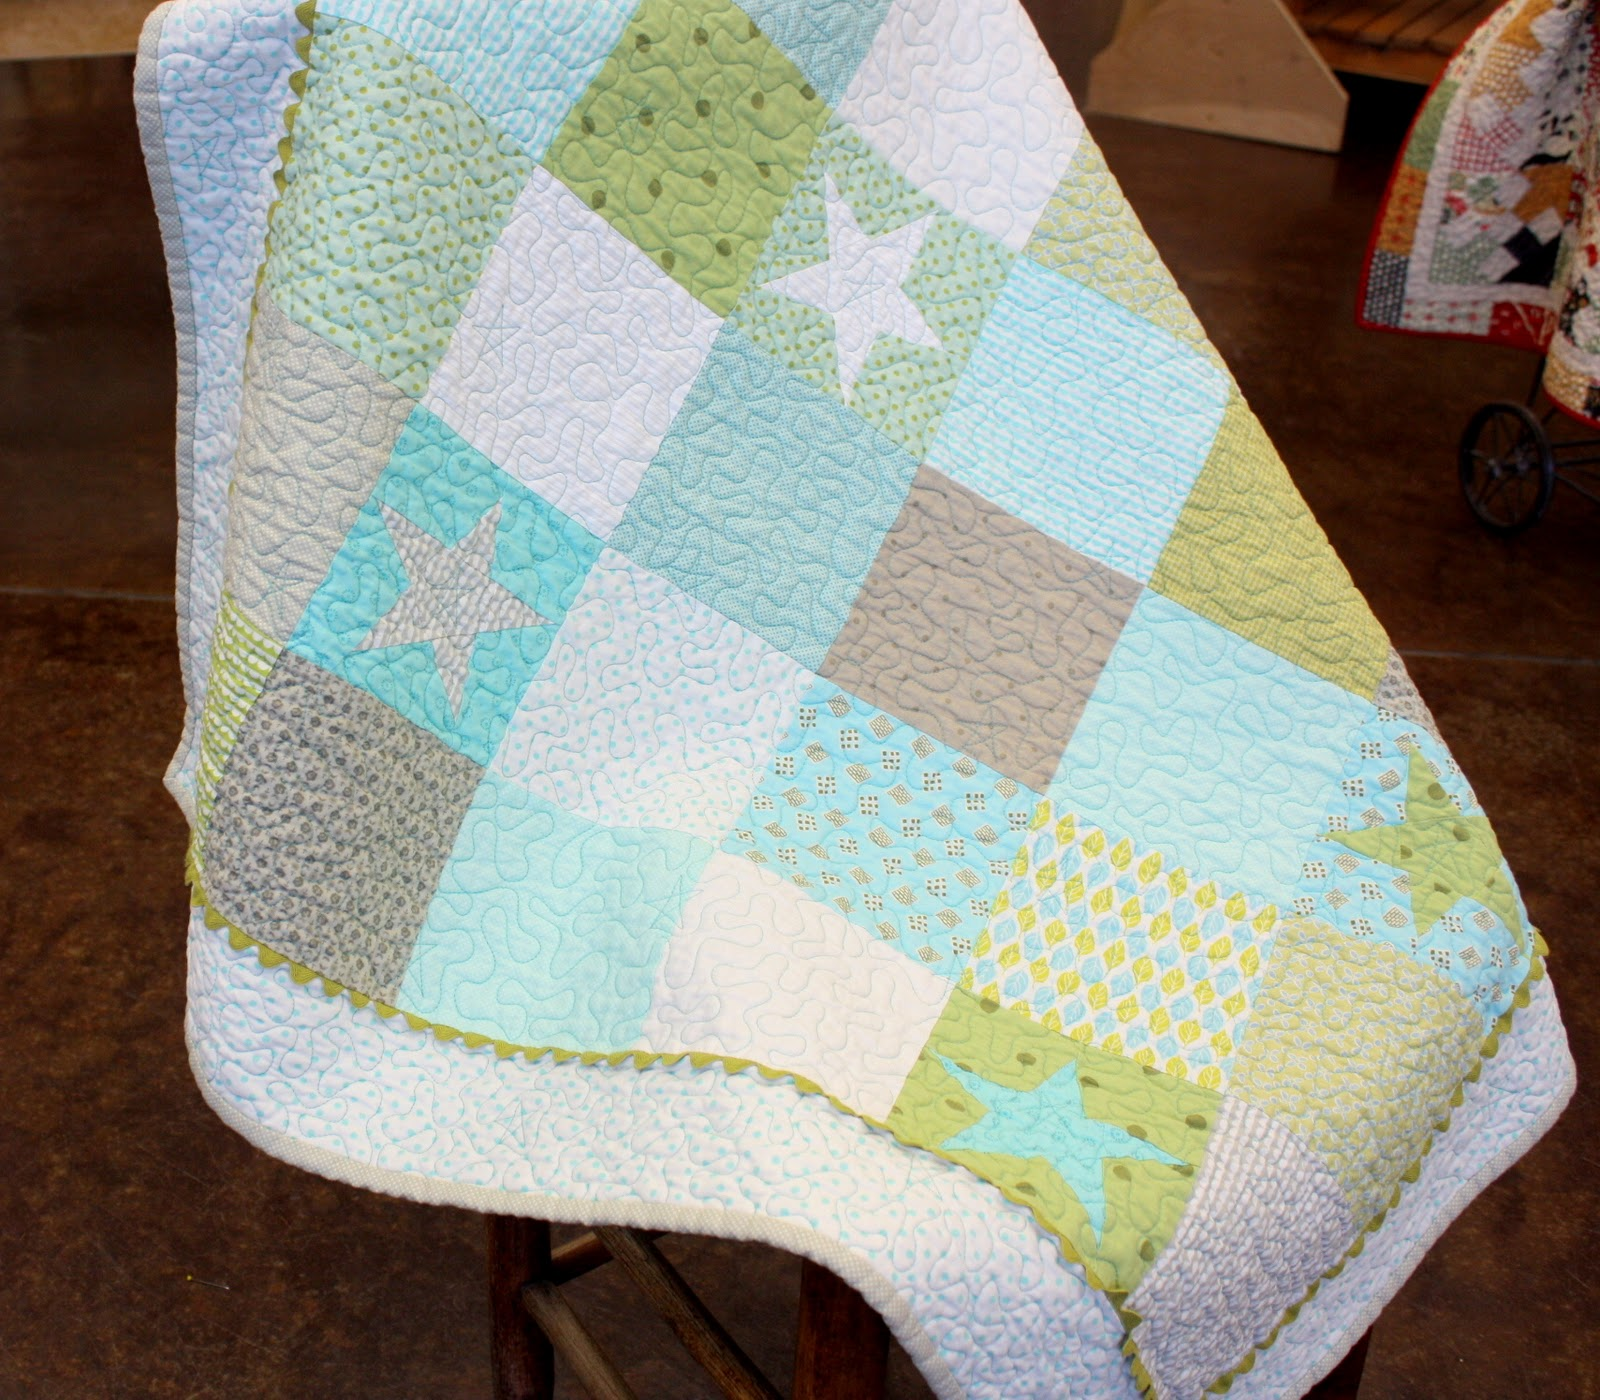 Bright new quilt + baby quilt kits - Diary of a Quilter - a quilt blog : quilts kits - Adamdwight.com